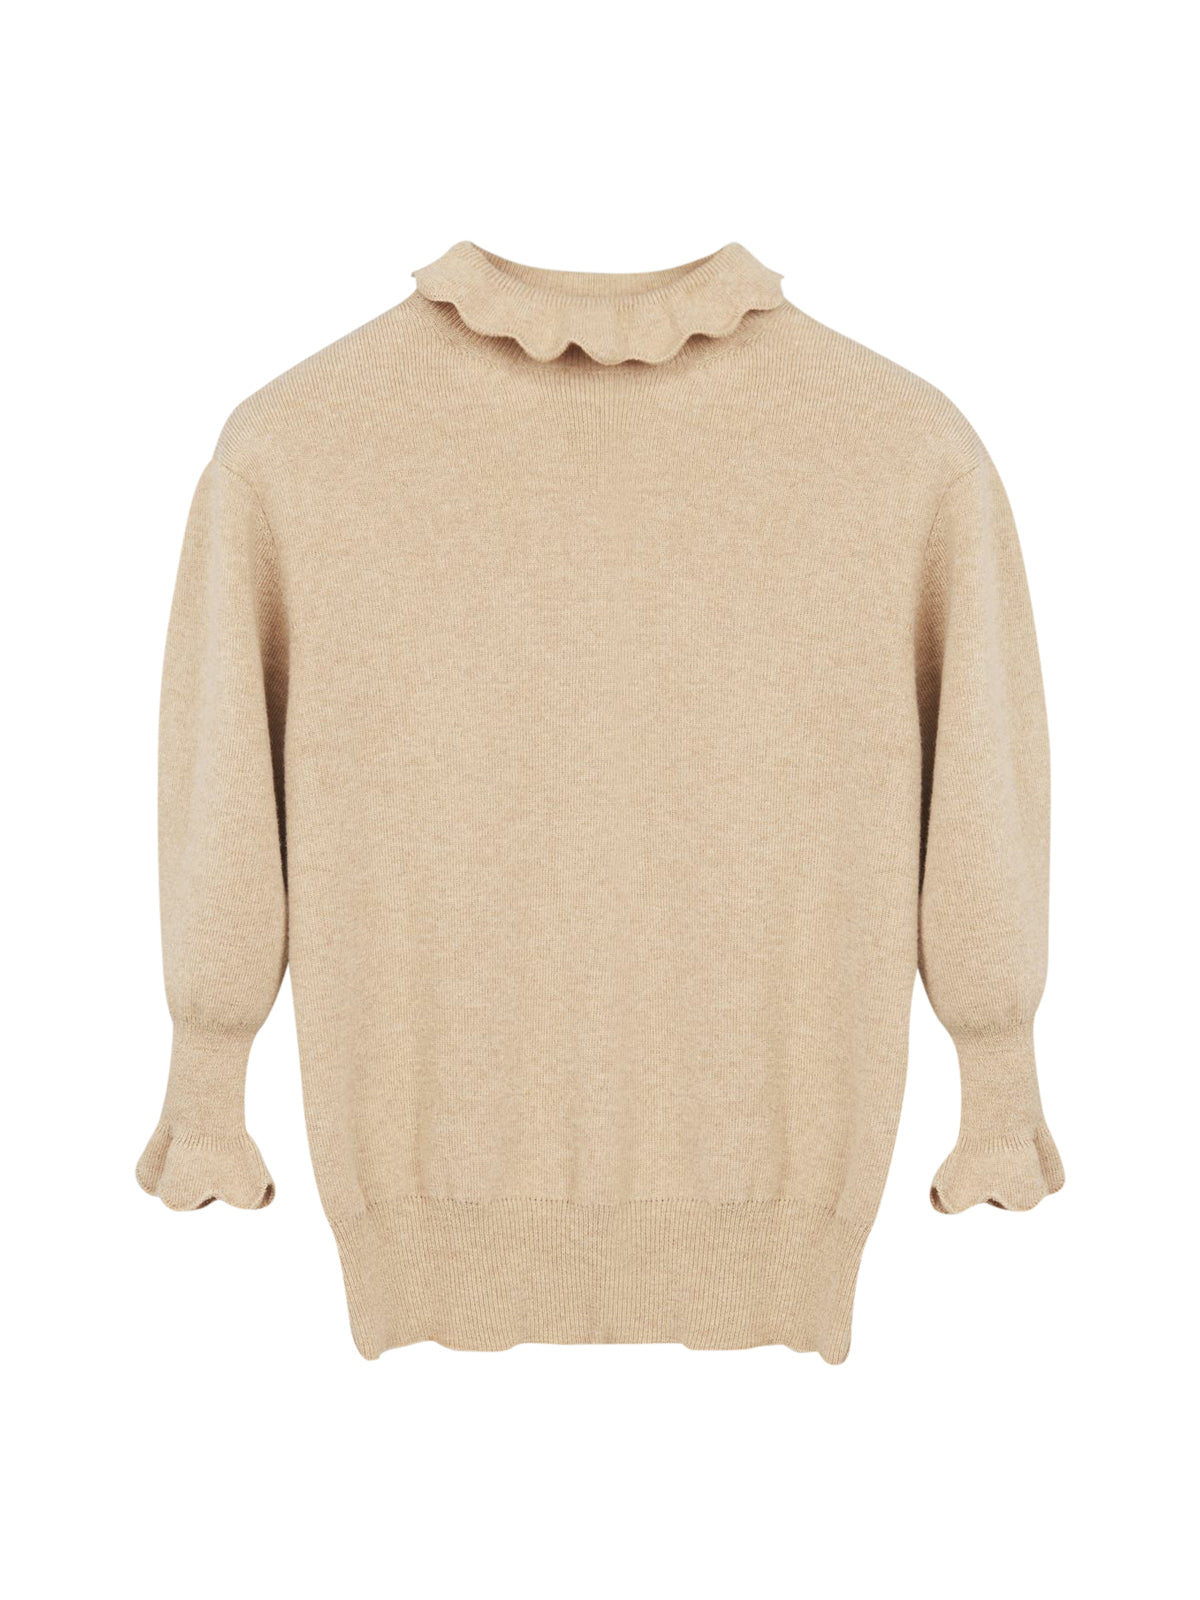 High neck knitted sweater in wavy wool